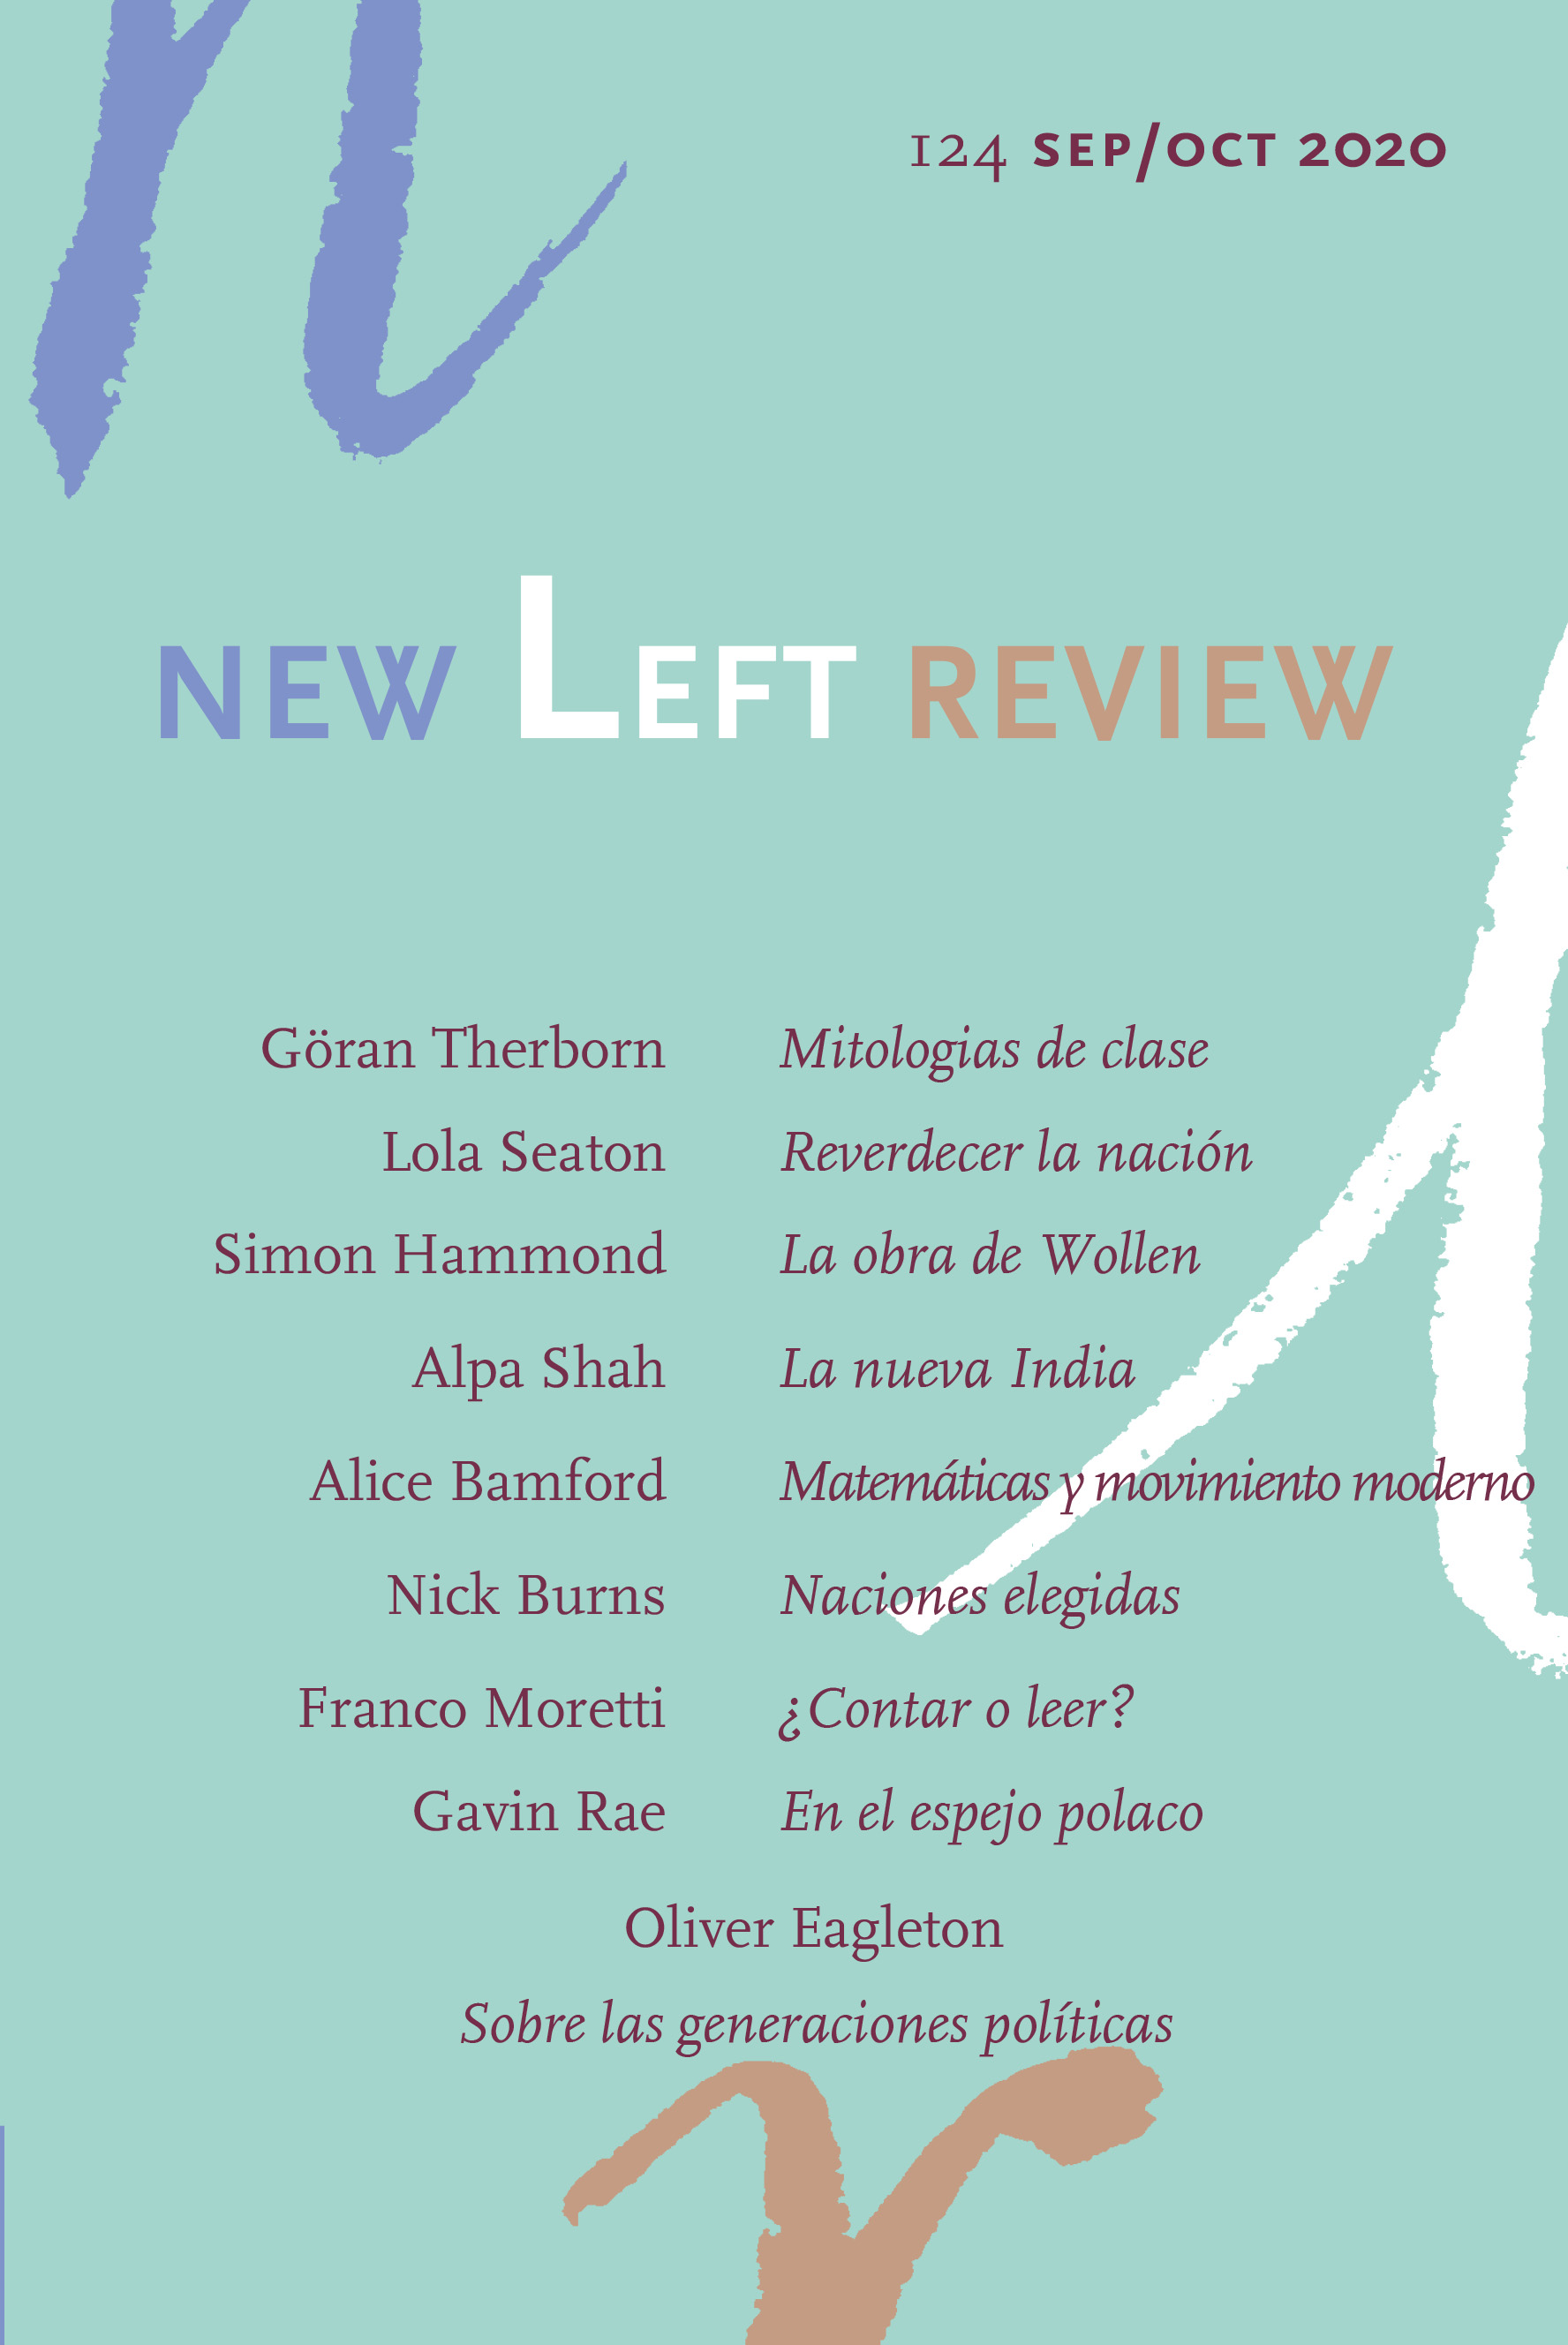 New Left Review 124 (Sep/Oct 2020) - VV AA